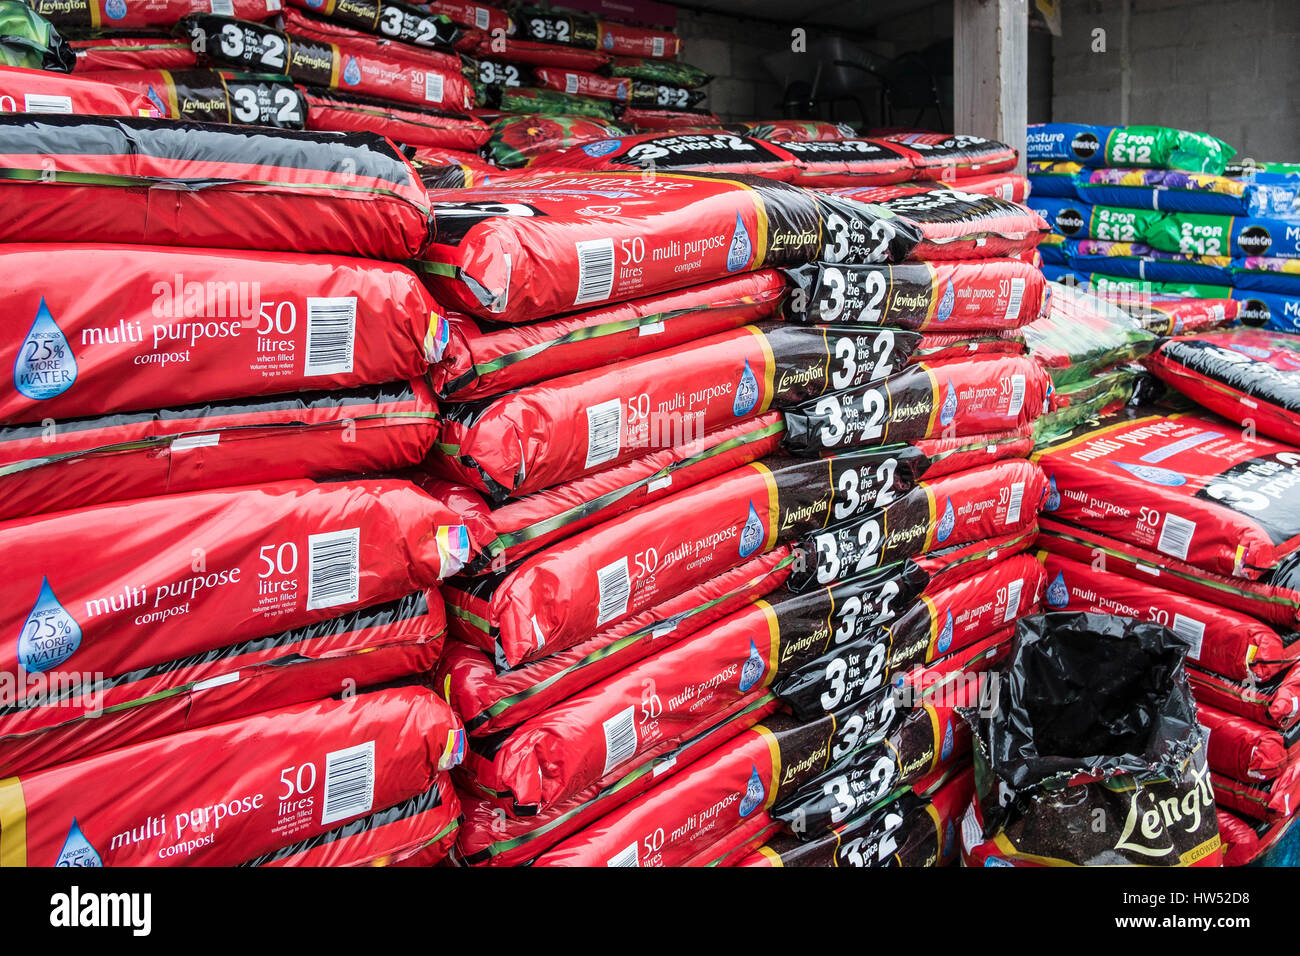 garden centre bags compost sale leisure gardening business display